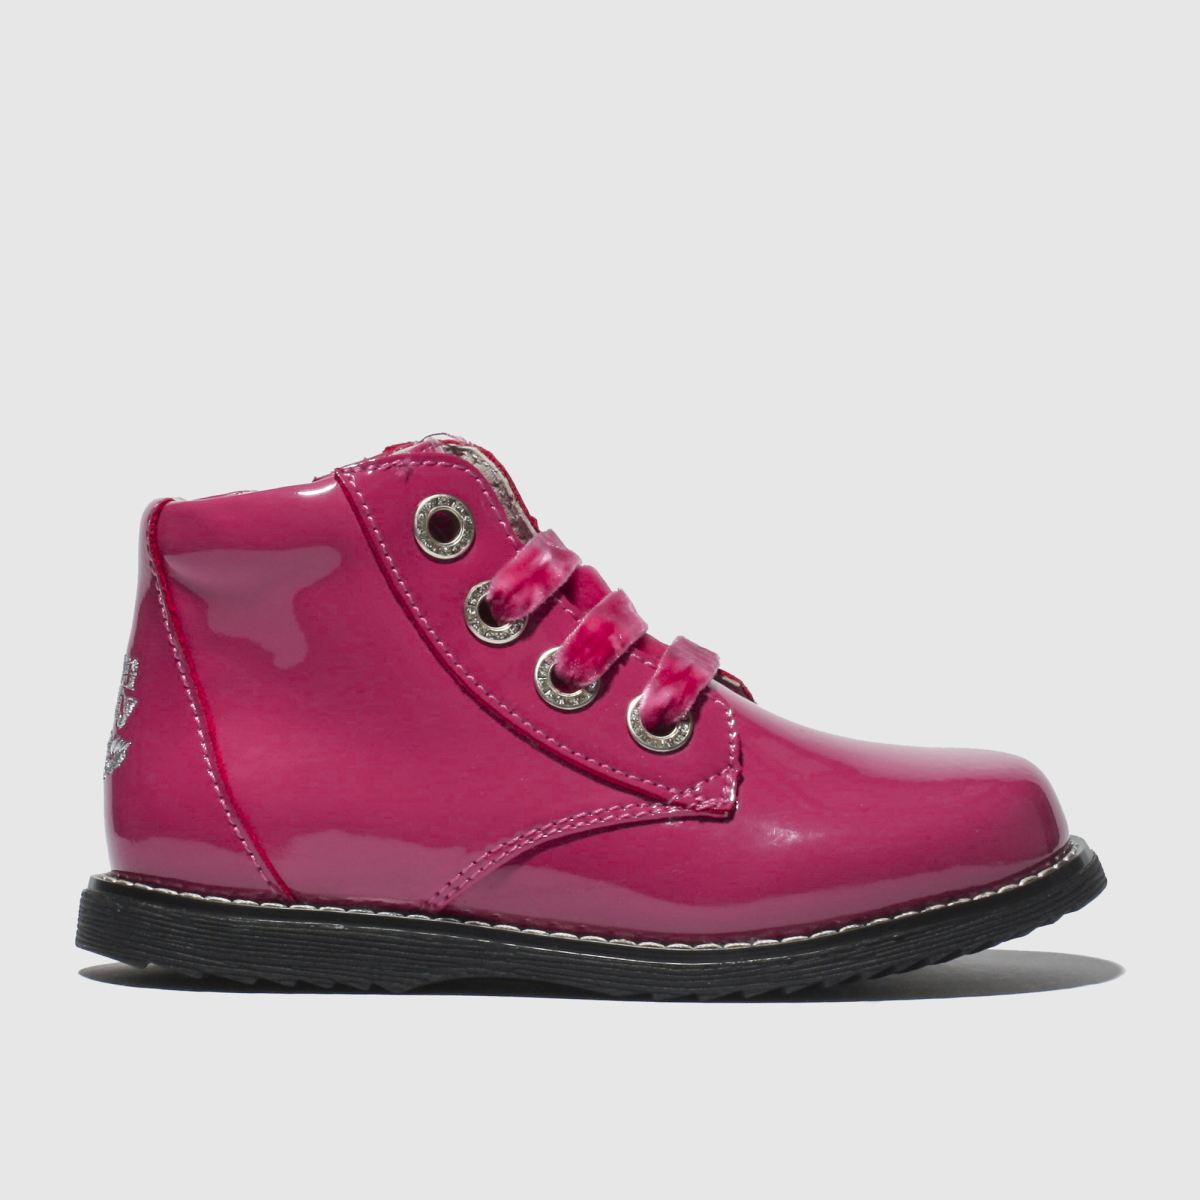 Lelli Kelly Pink Camille Boots Toddler